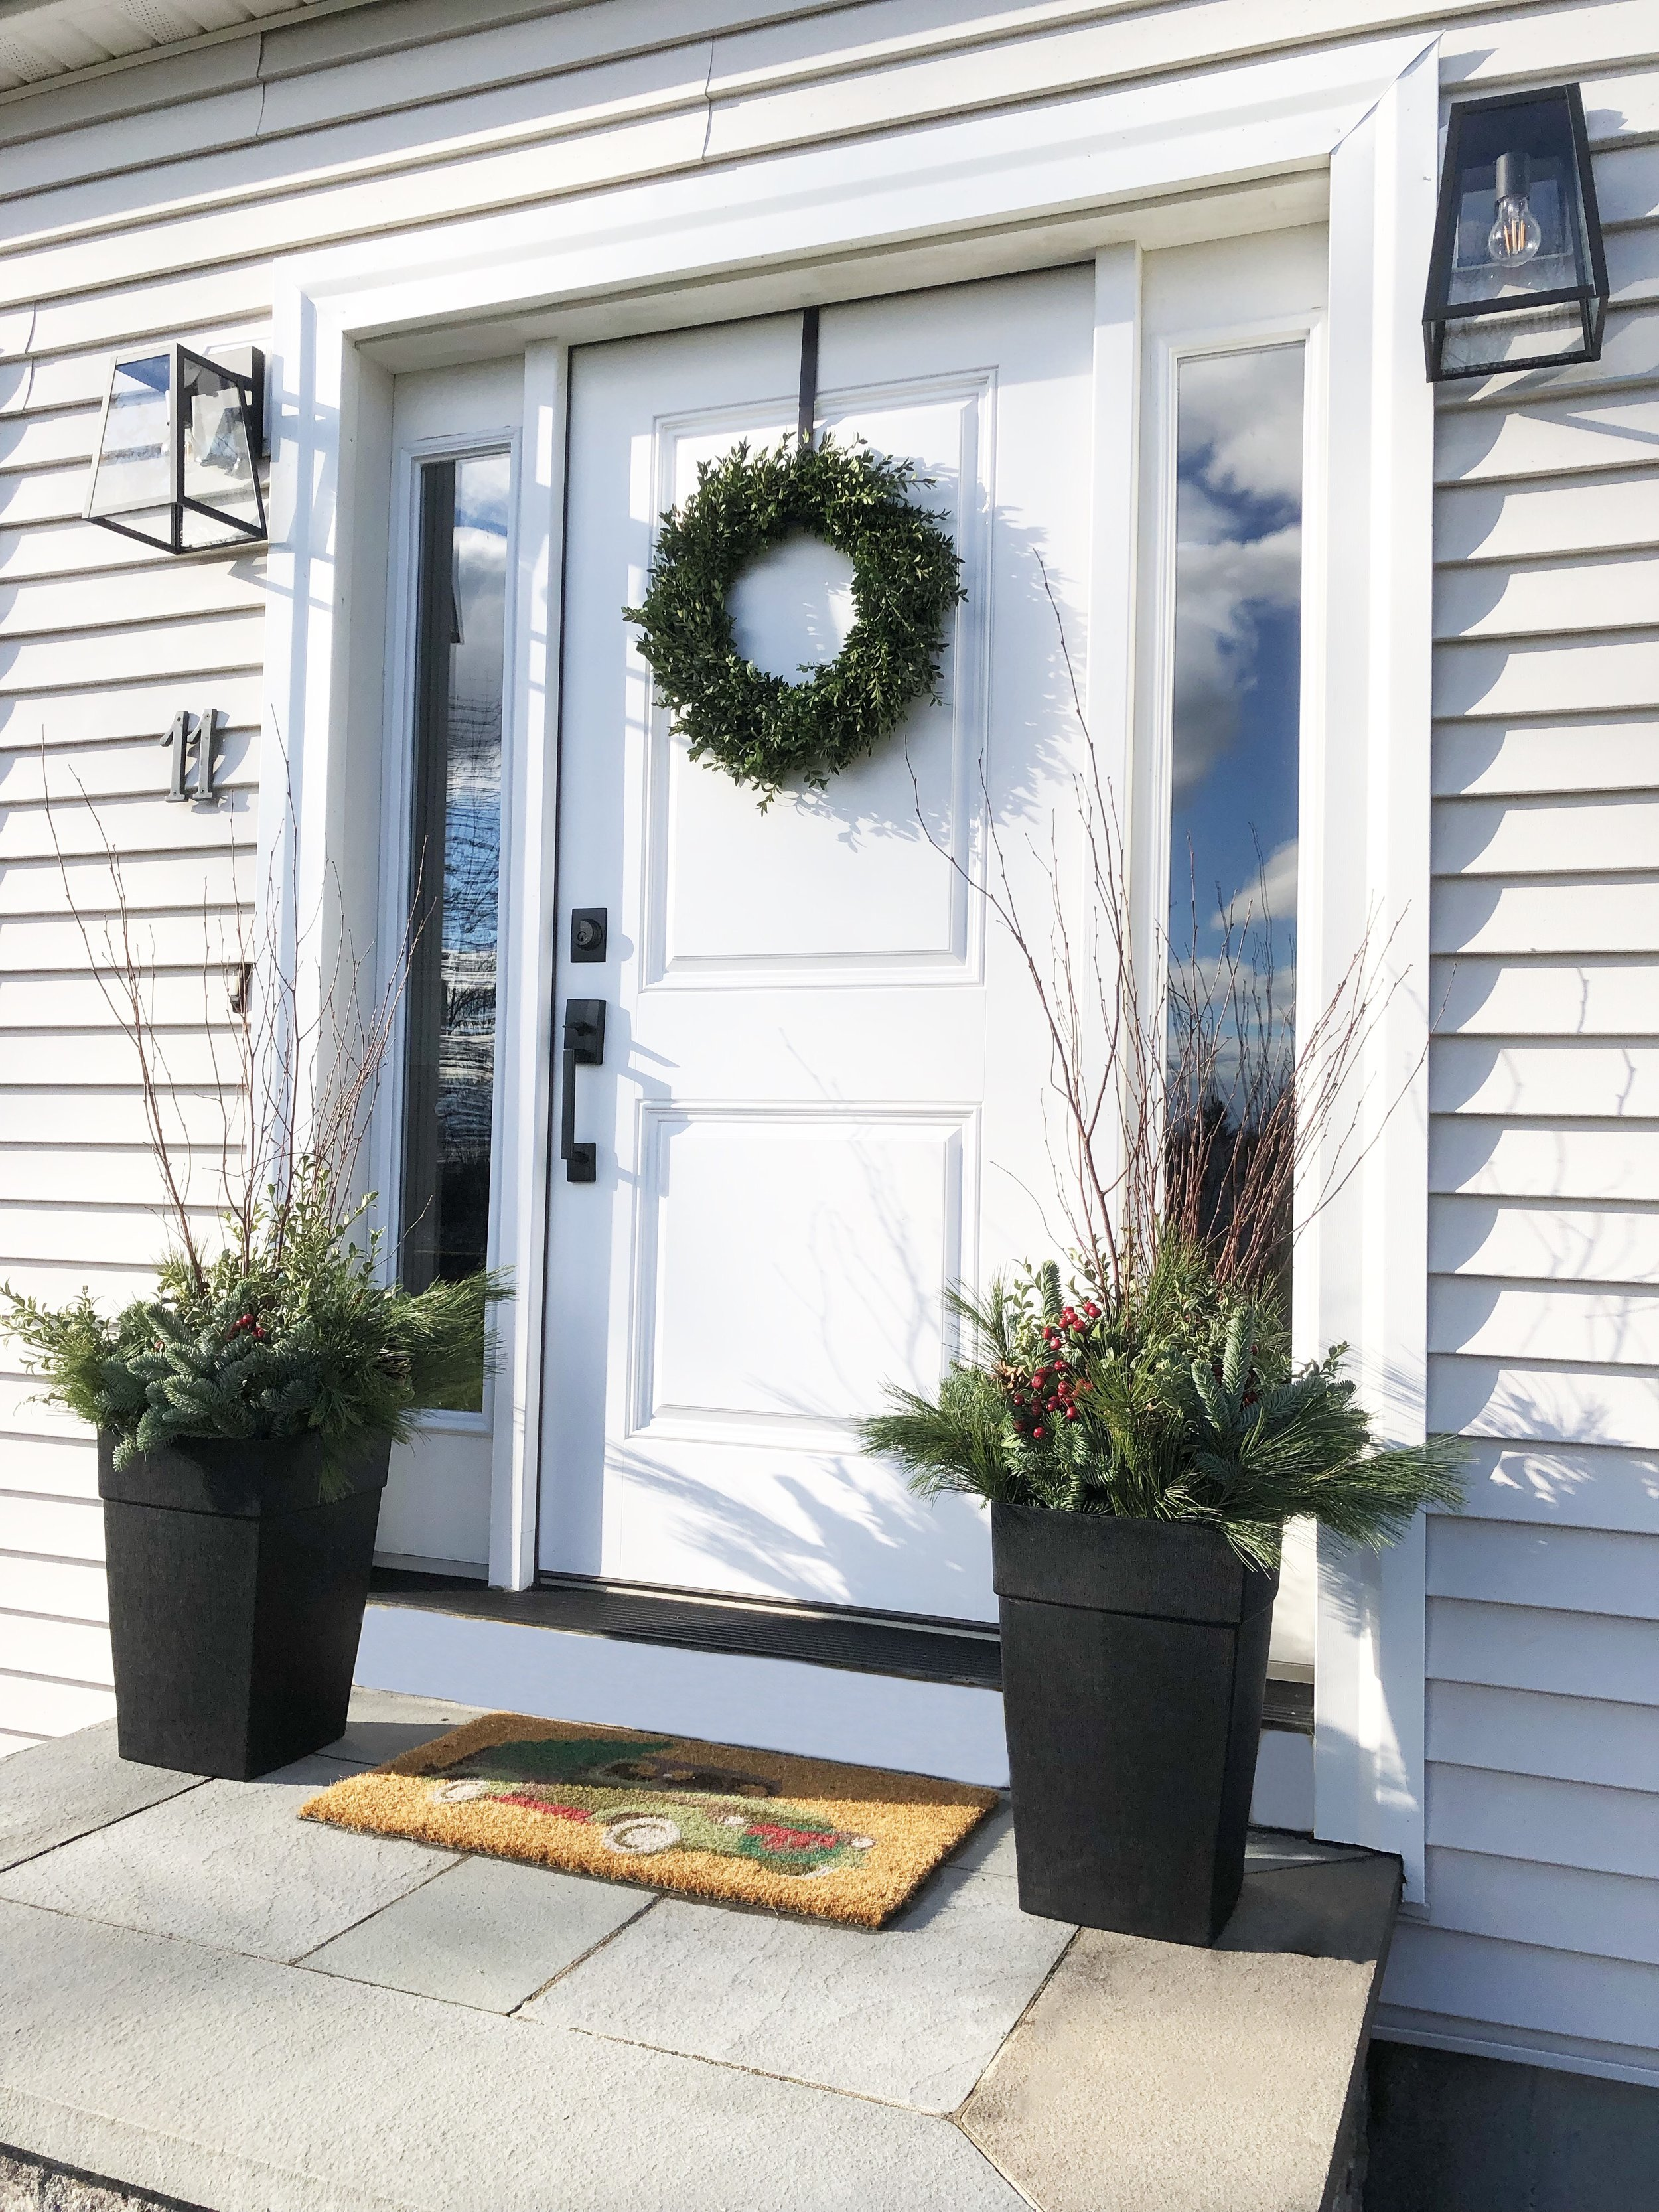 Outdoor Planter arrangement by CountryBrook Farms in Hudson, NH